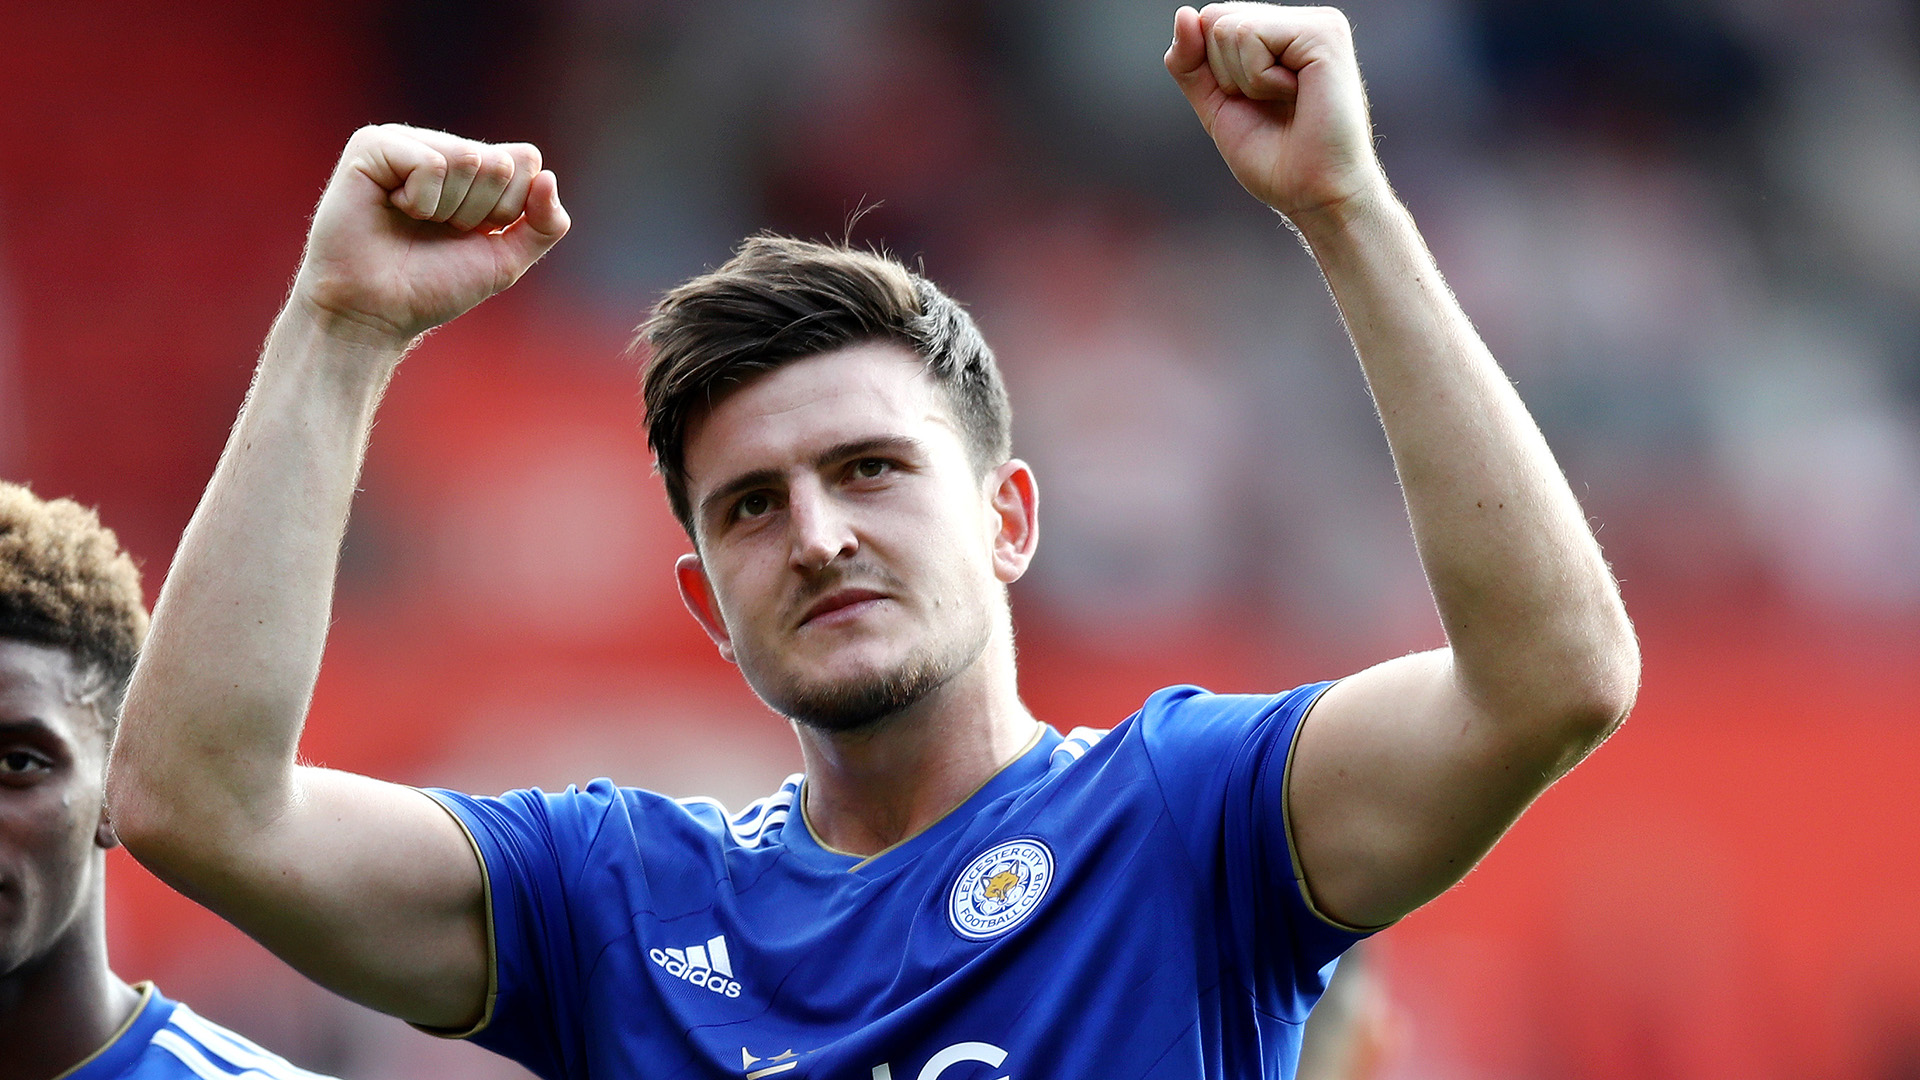 'Maguire will improve Man Utd or City' - Former Leicester team-mate backing big-money move